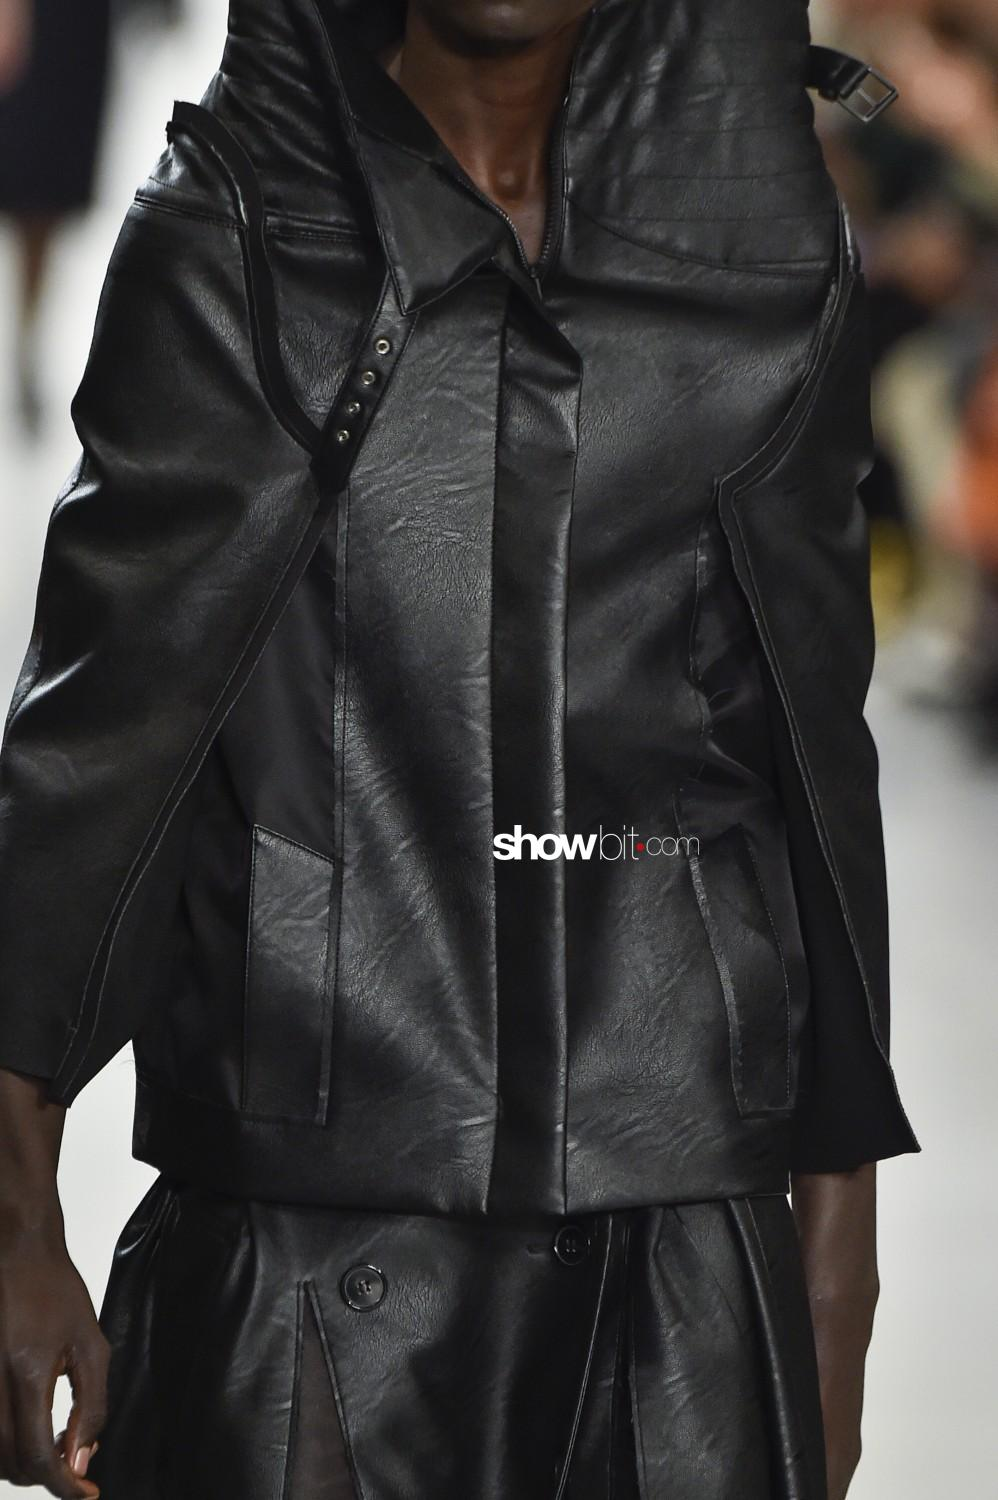 Maison Margiela close-up Women Fall Winter 2019 2020 Paris